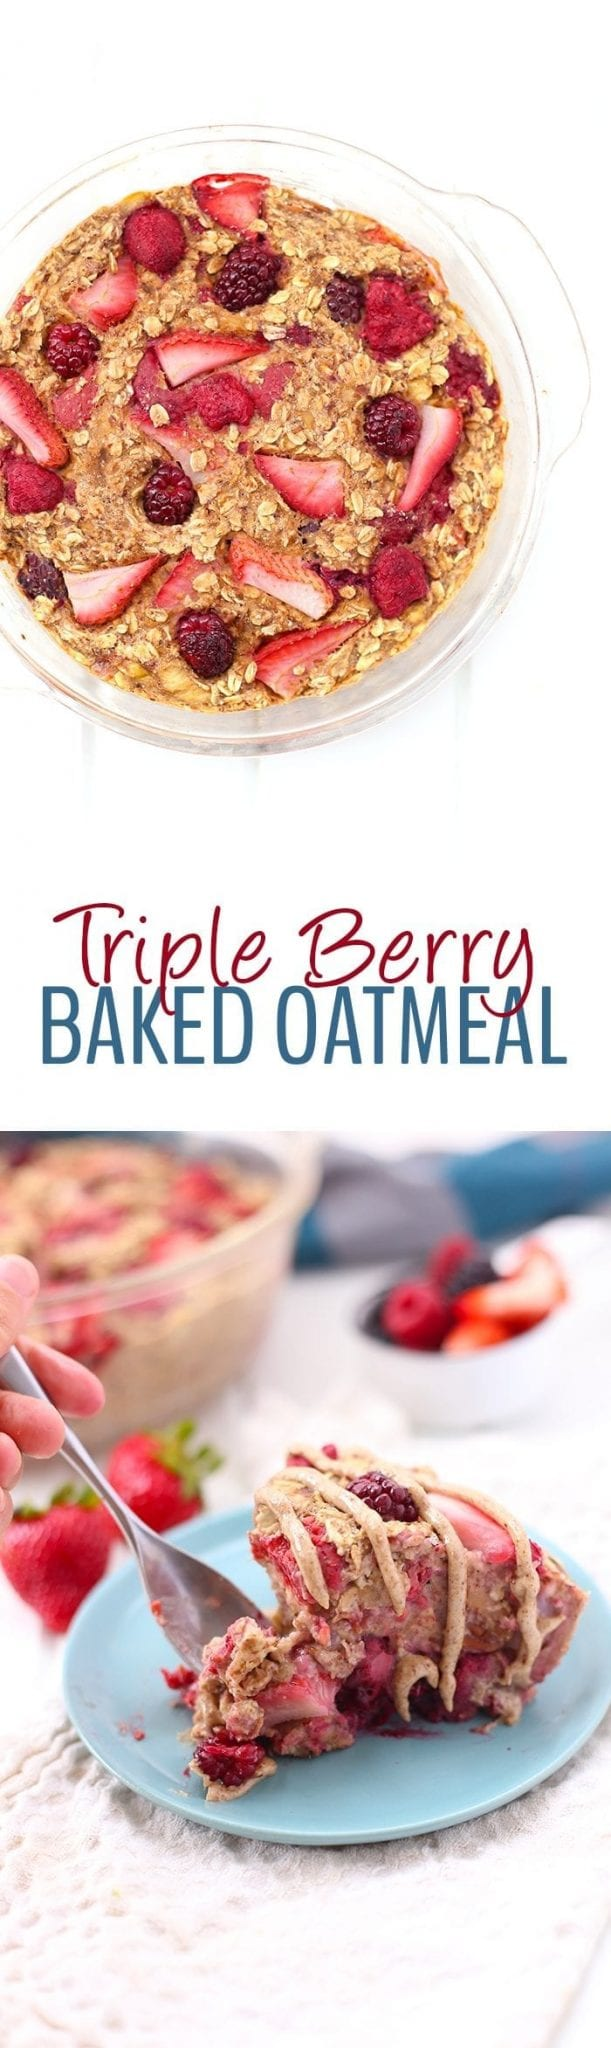 No need to pick your favorite berry in this Triple Berry Baked Oatmeal. Swap in your top choices and toss in the oven for a healthy breakfast or brunch recipe that is gluten-free and vegan too!